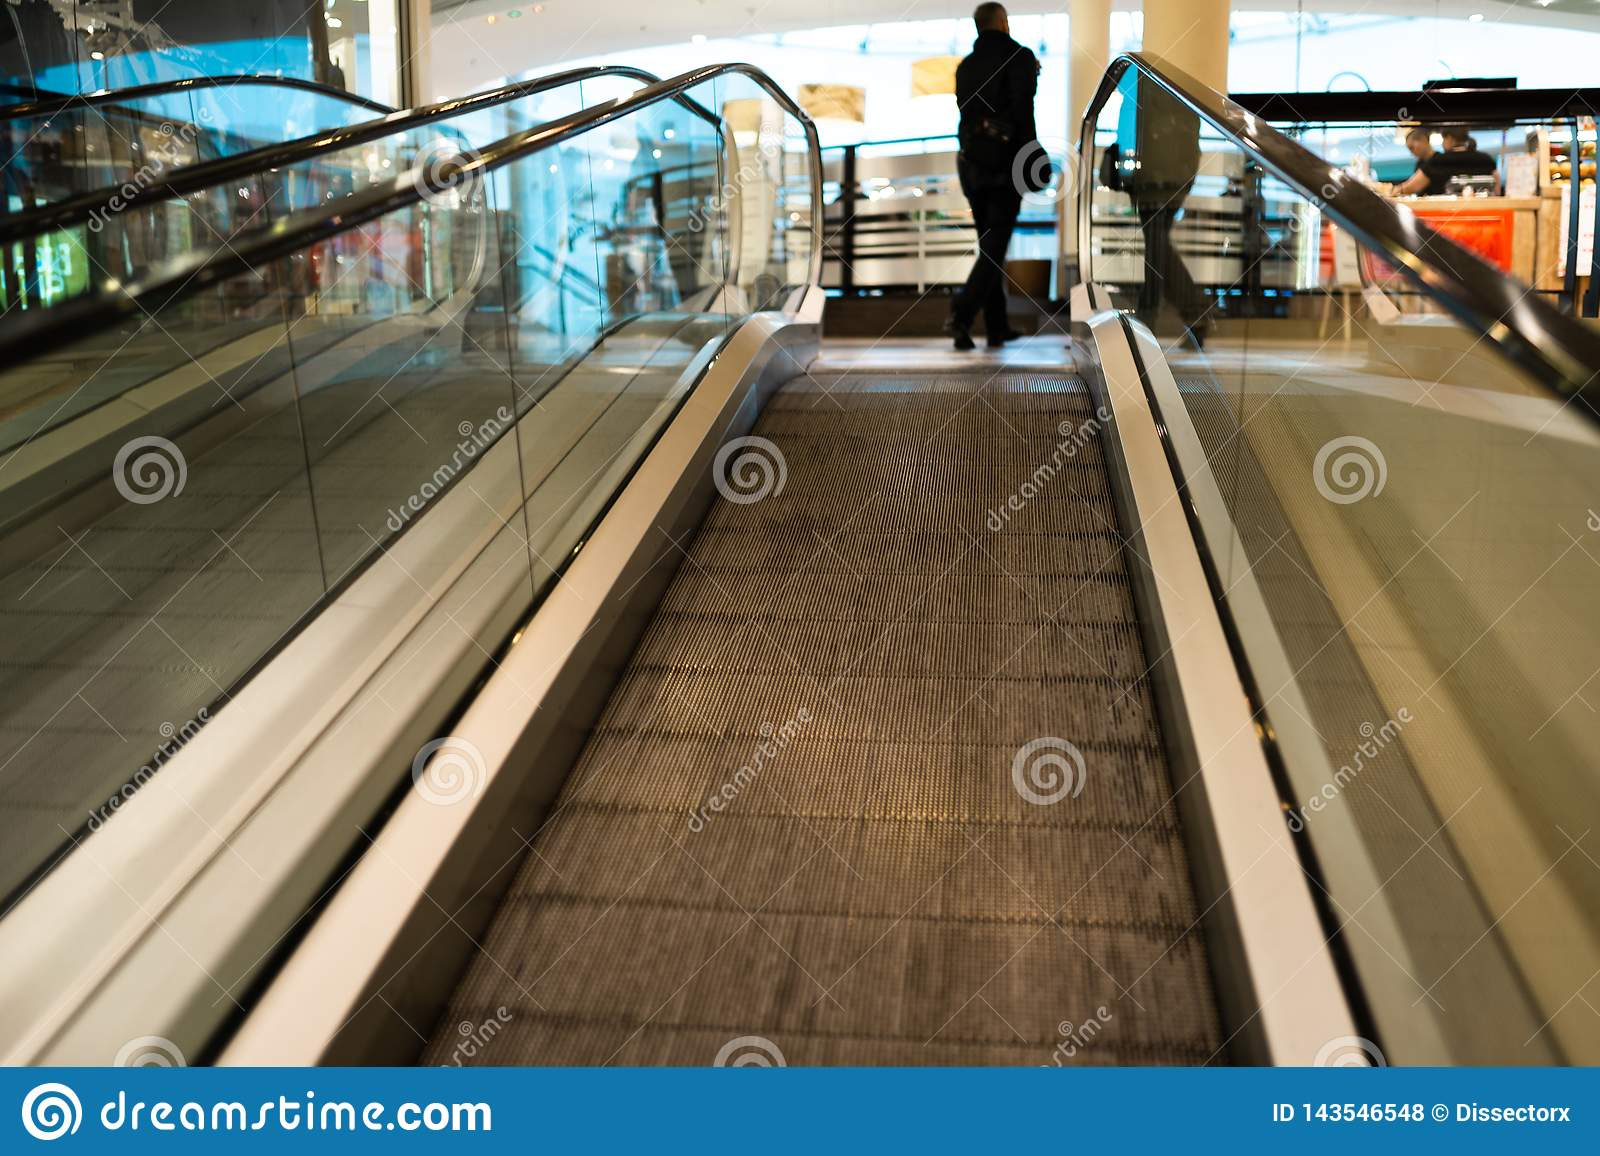 Person rush on escalator motion blurred in the background